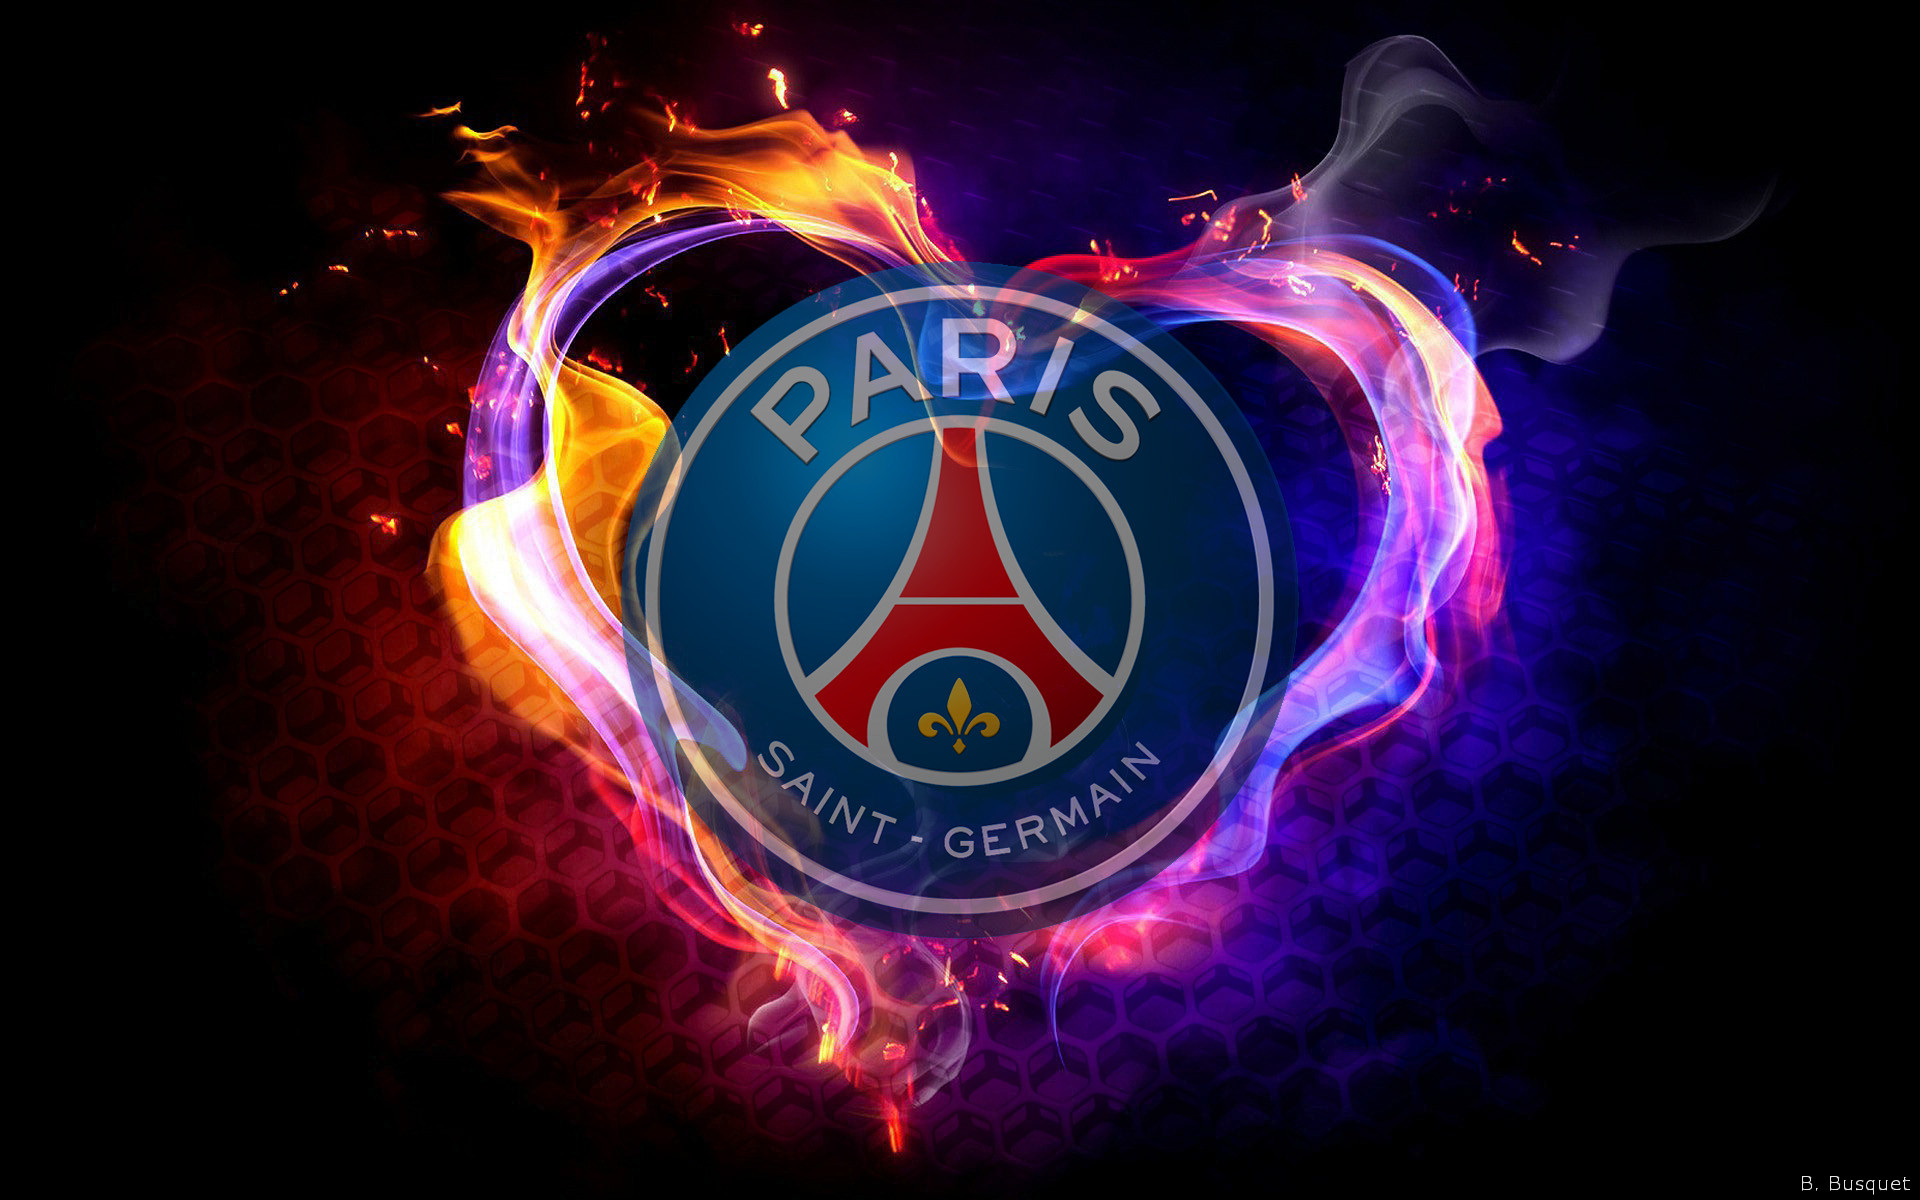 Paris saint germain psg barbaras hd wallpapers for Image de fond